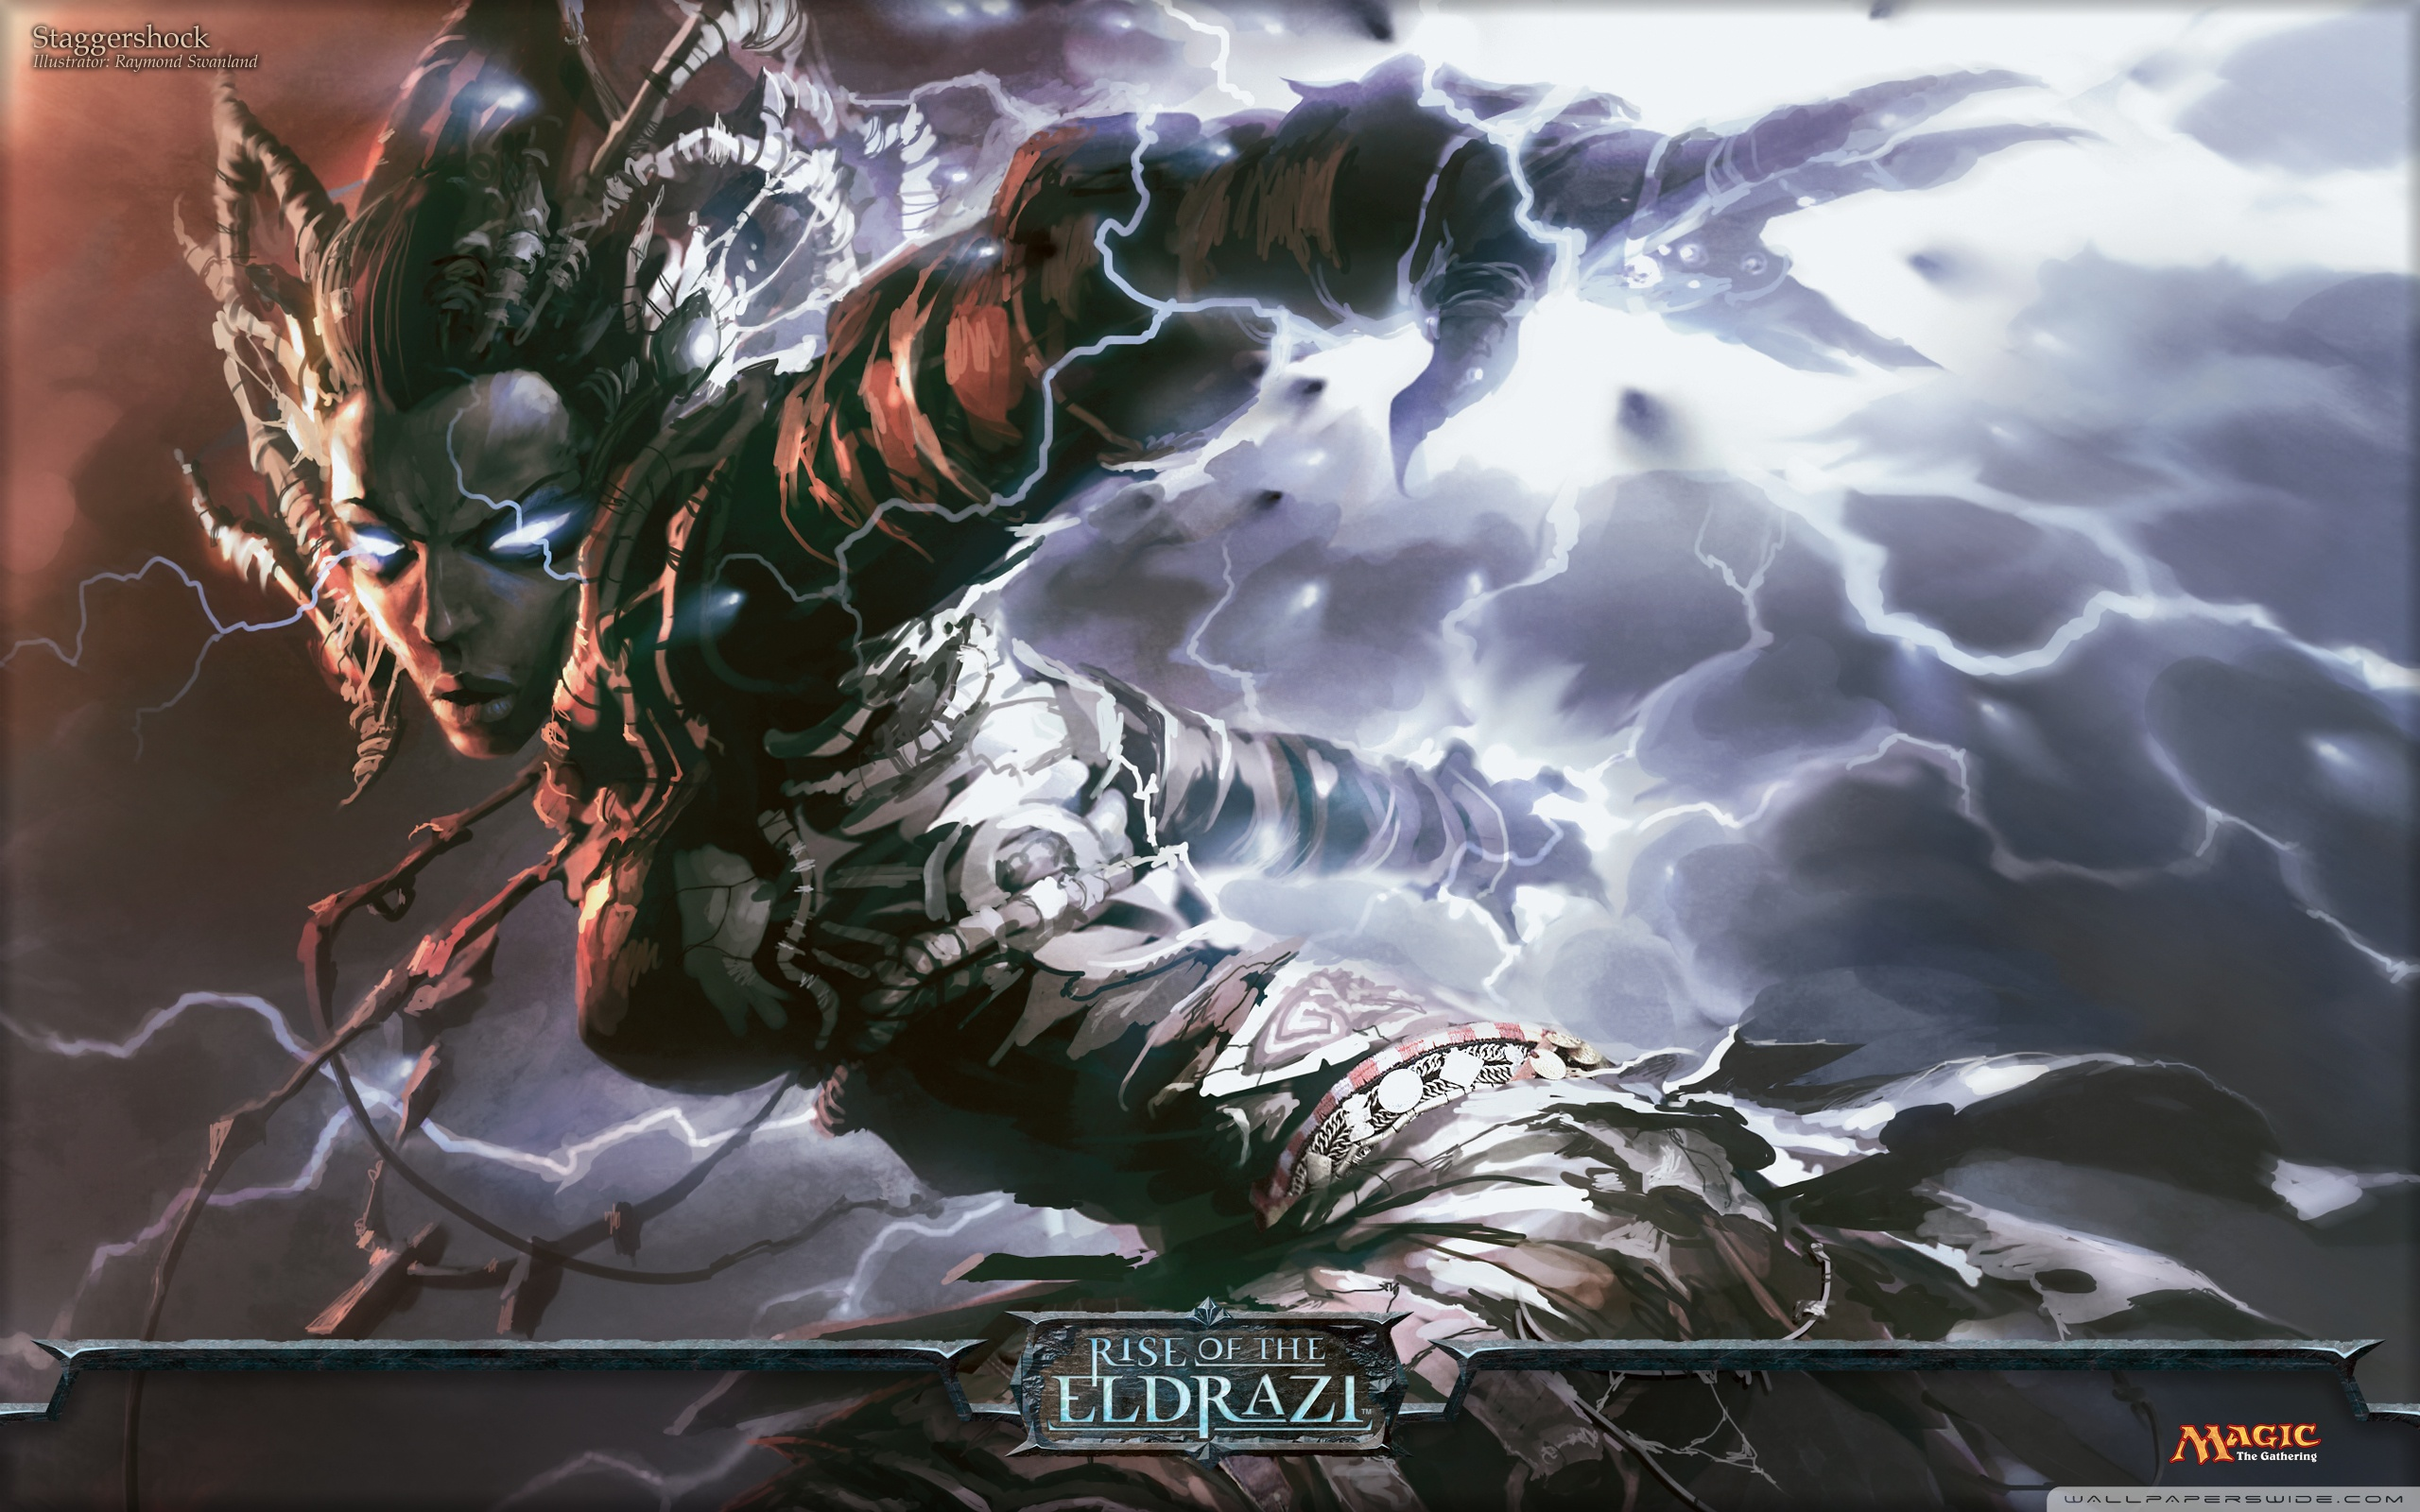 Download Free WallpaperMagic The Gathering